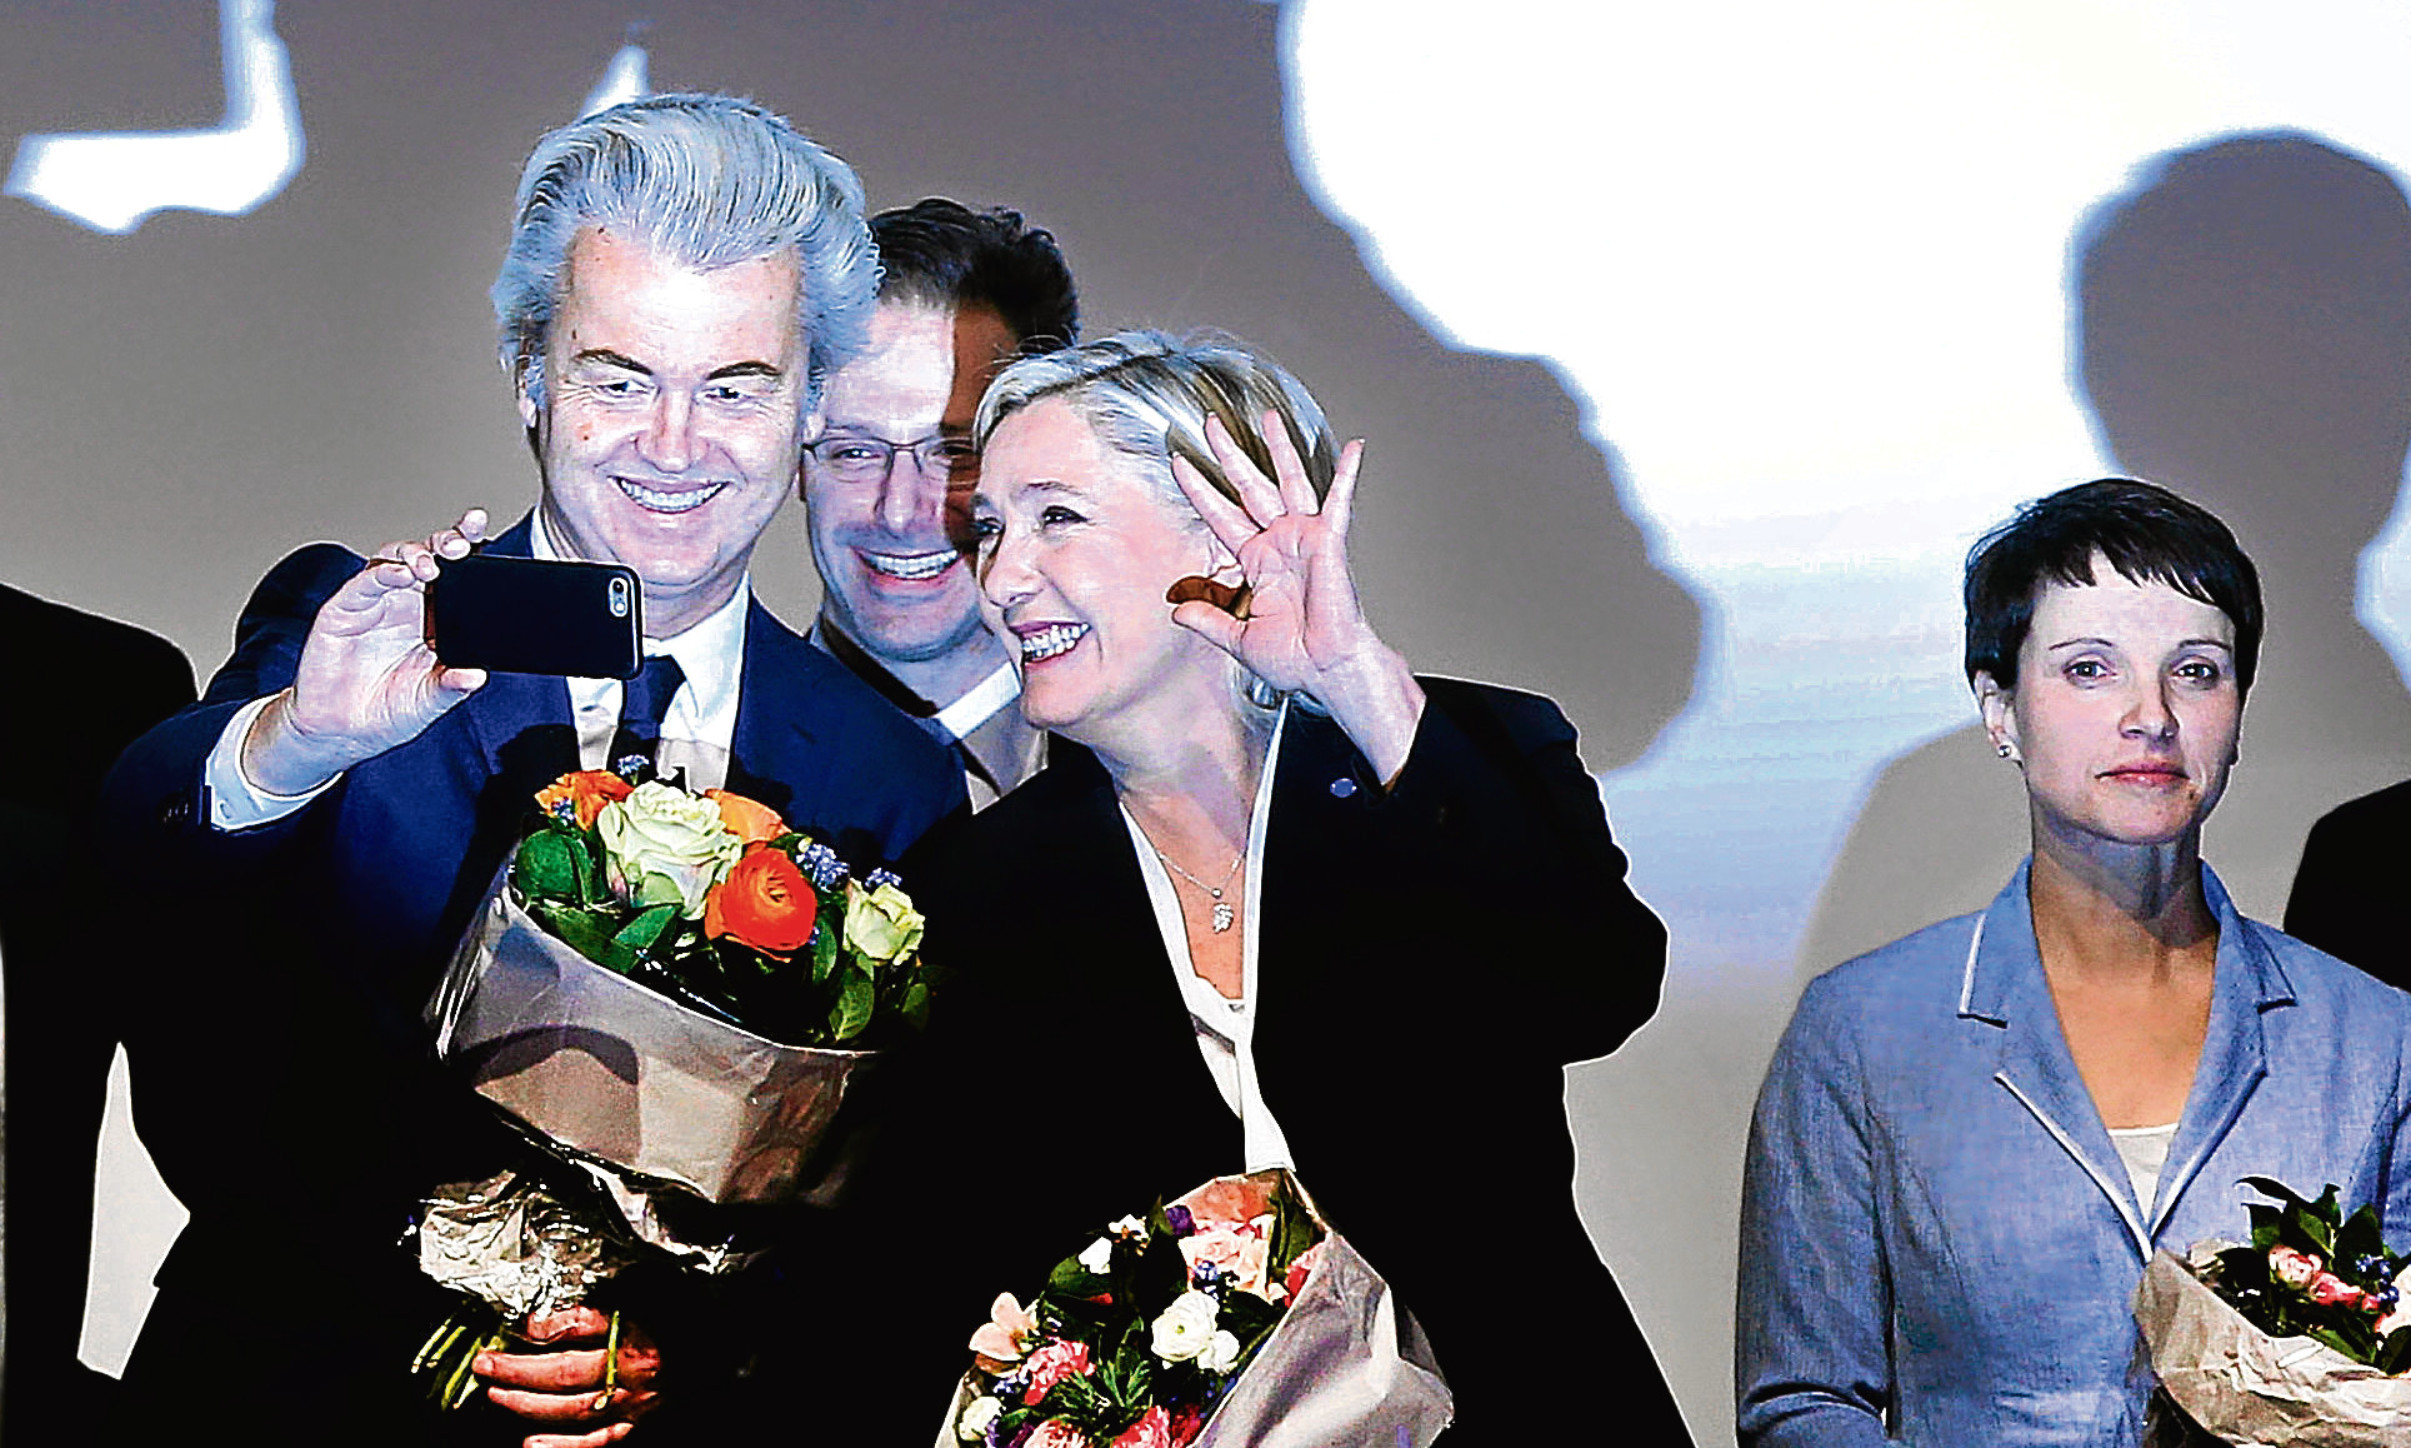 Geert Wilders and Marine le Pen at a meeting of nationalists in Koblenz at the weekend, a gathering Alex says we should be fearful of.